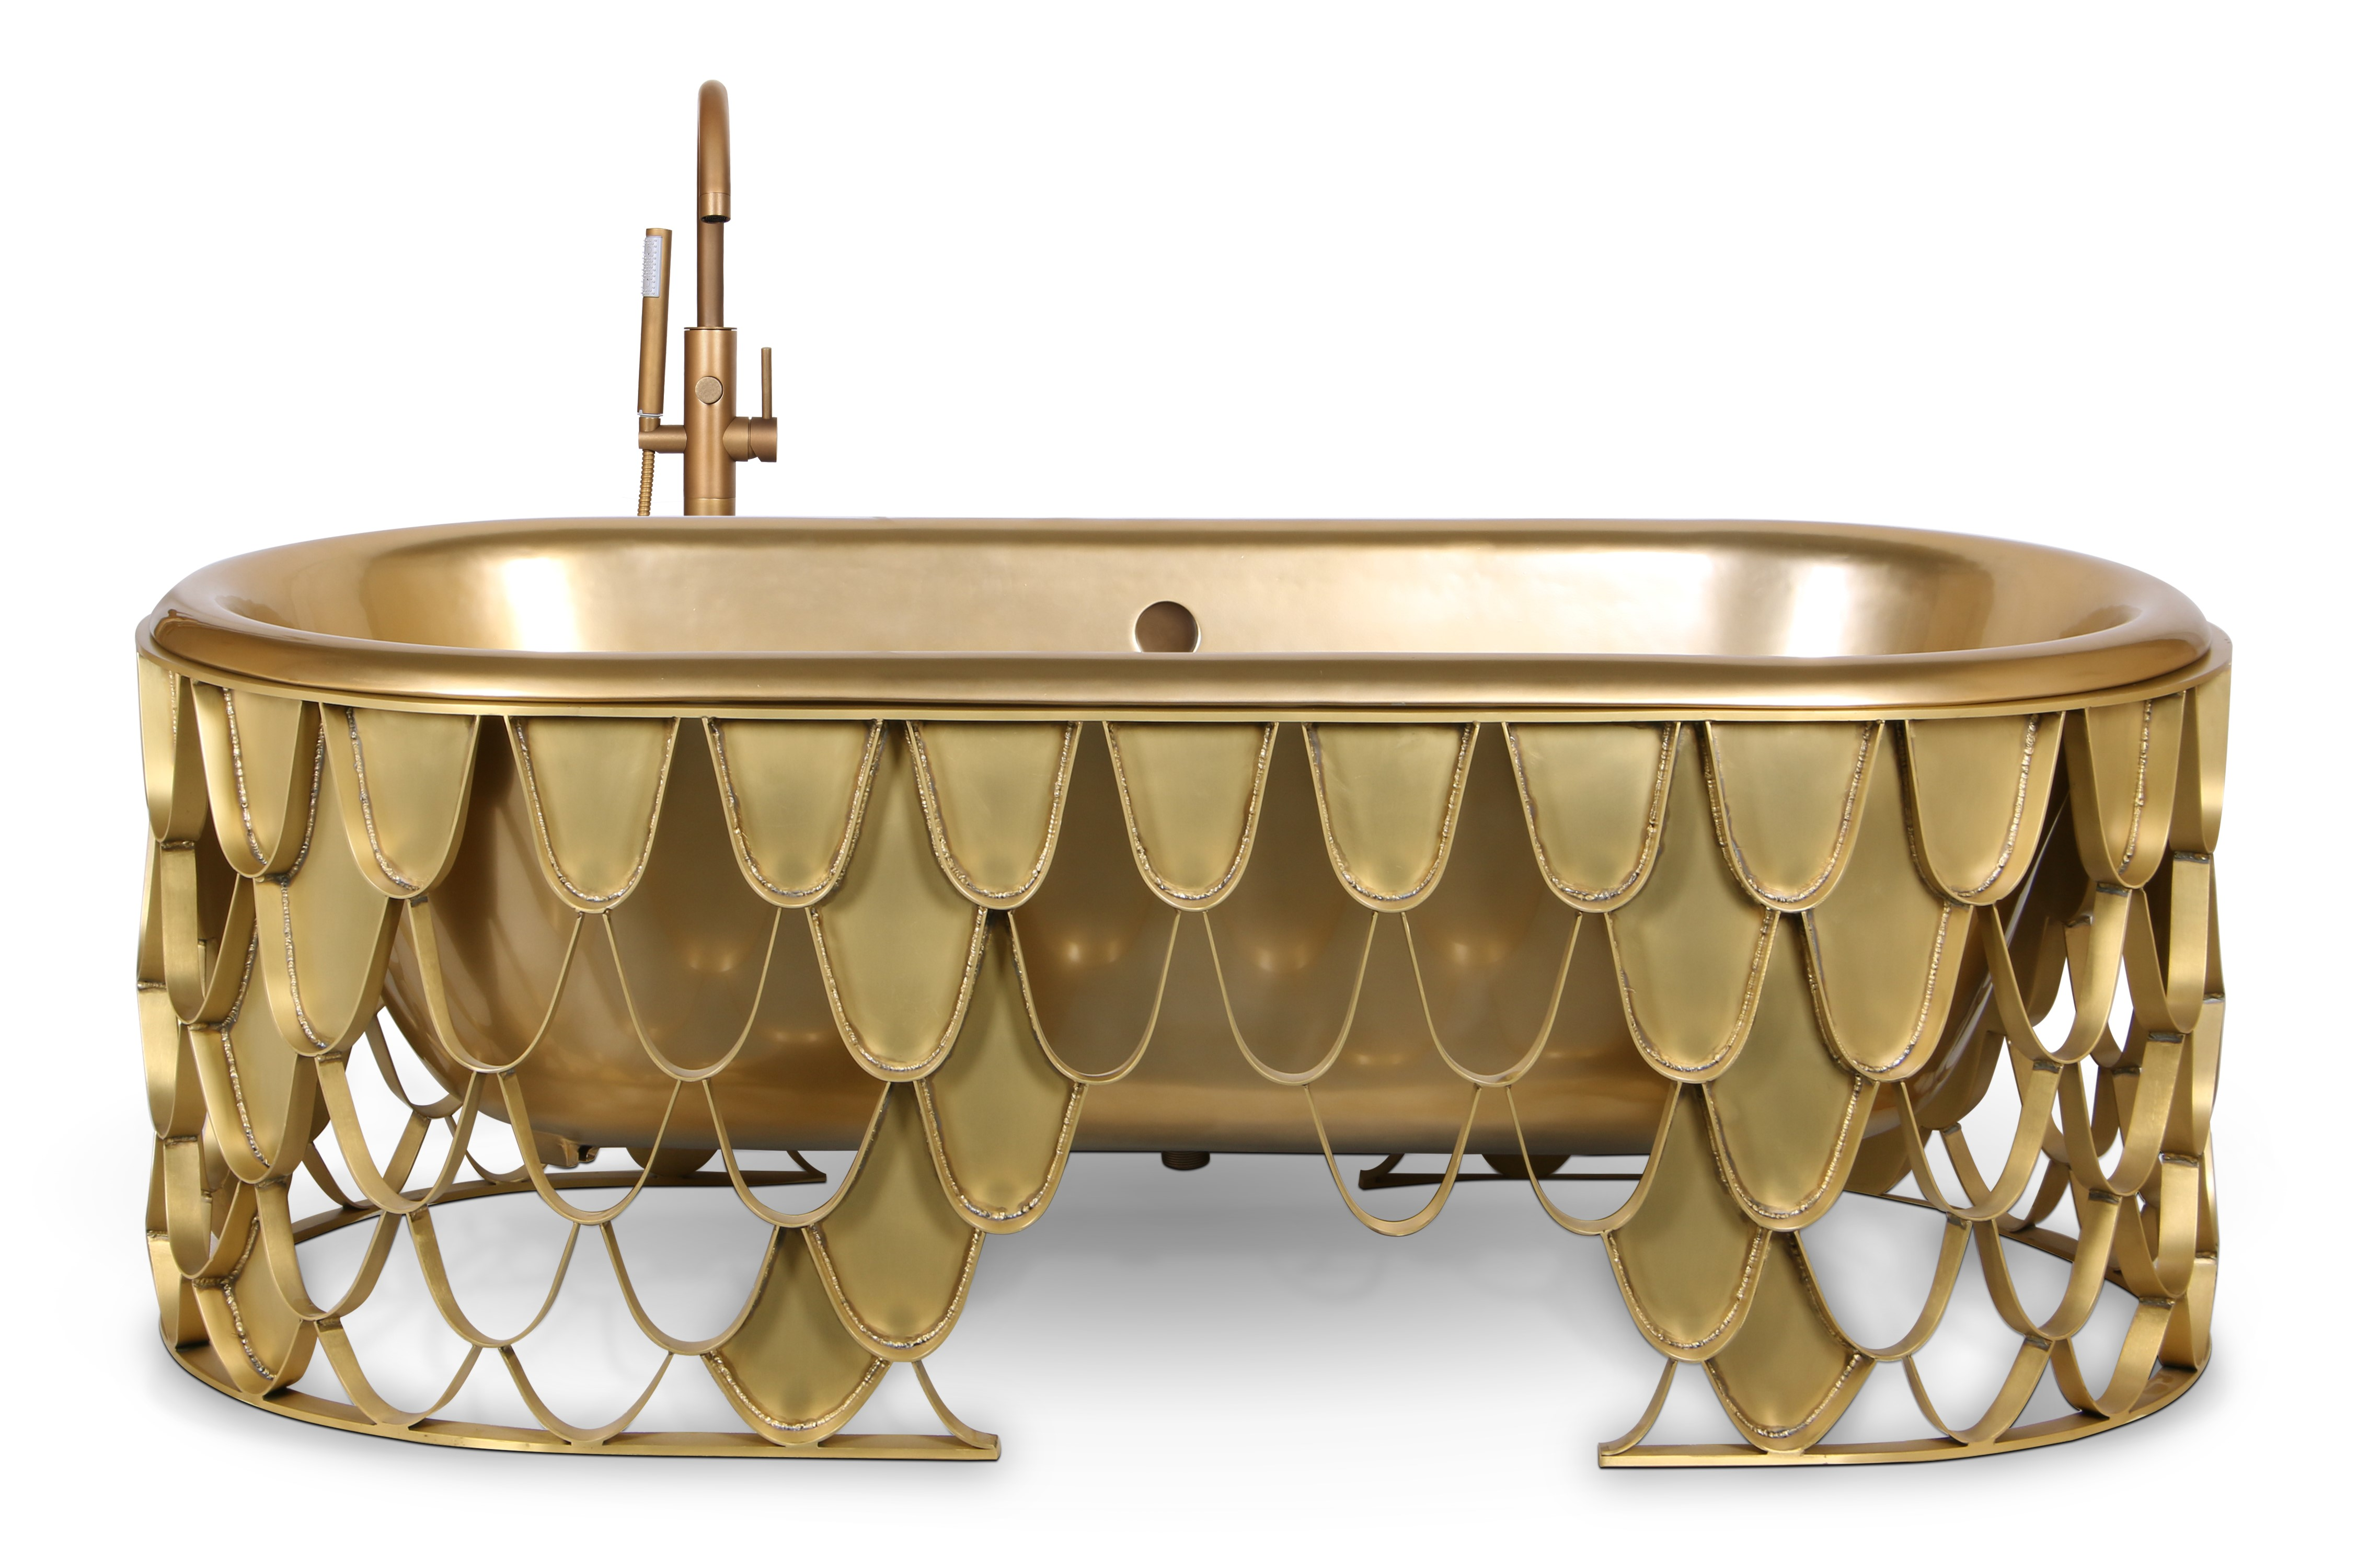 Mixed Metals Decor, 2019 trends, decoration, maison valentina, metals, brass, cooper, steel mixed metals decor 2019 Top Trends – Get the Best Out of a Mixed Metals Decor koi bathtub 1 HR